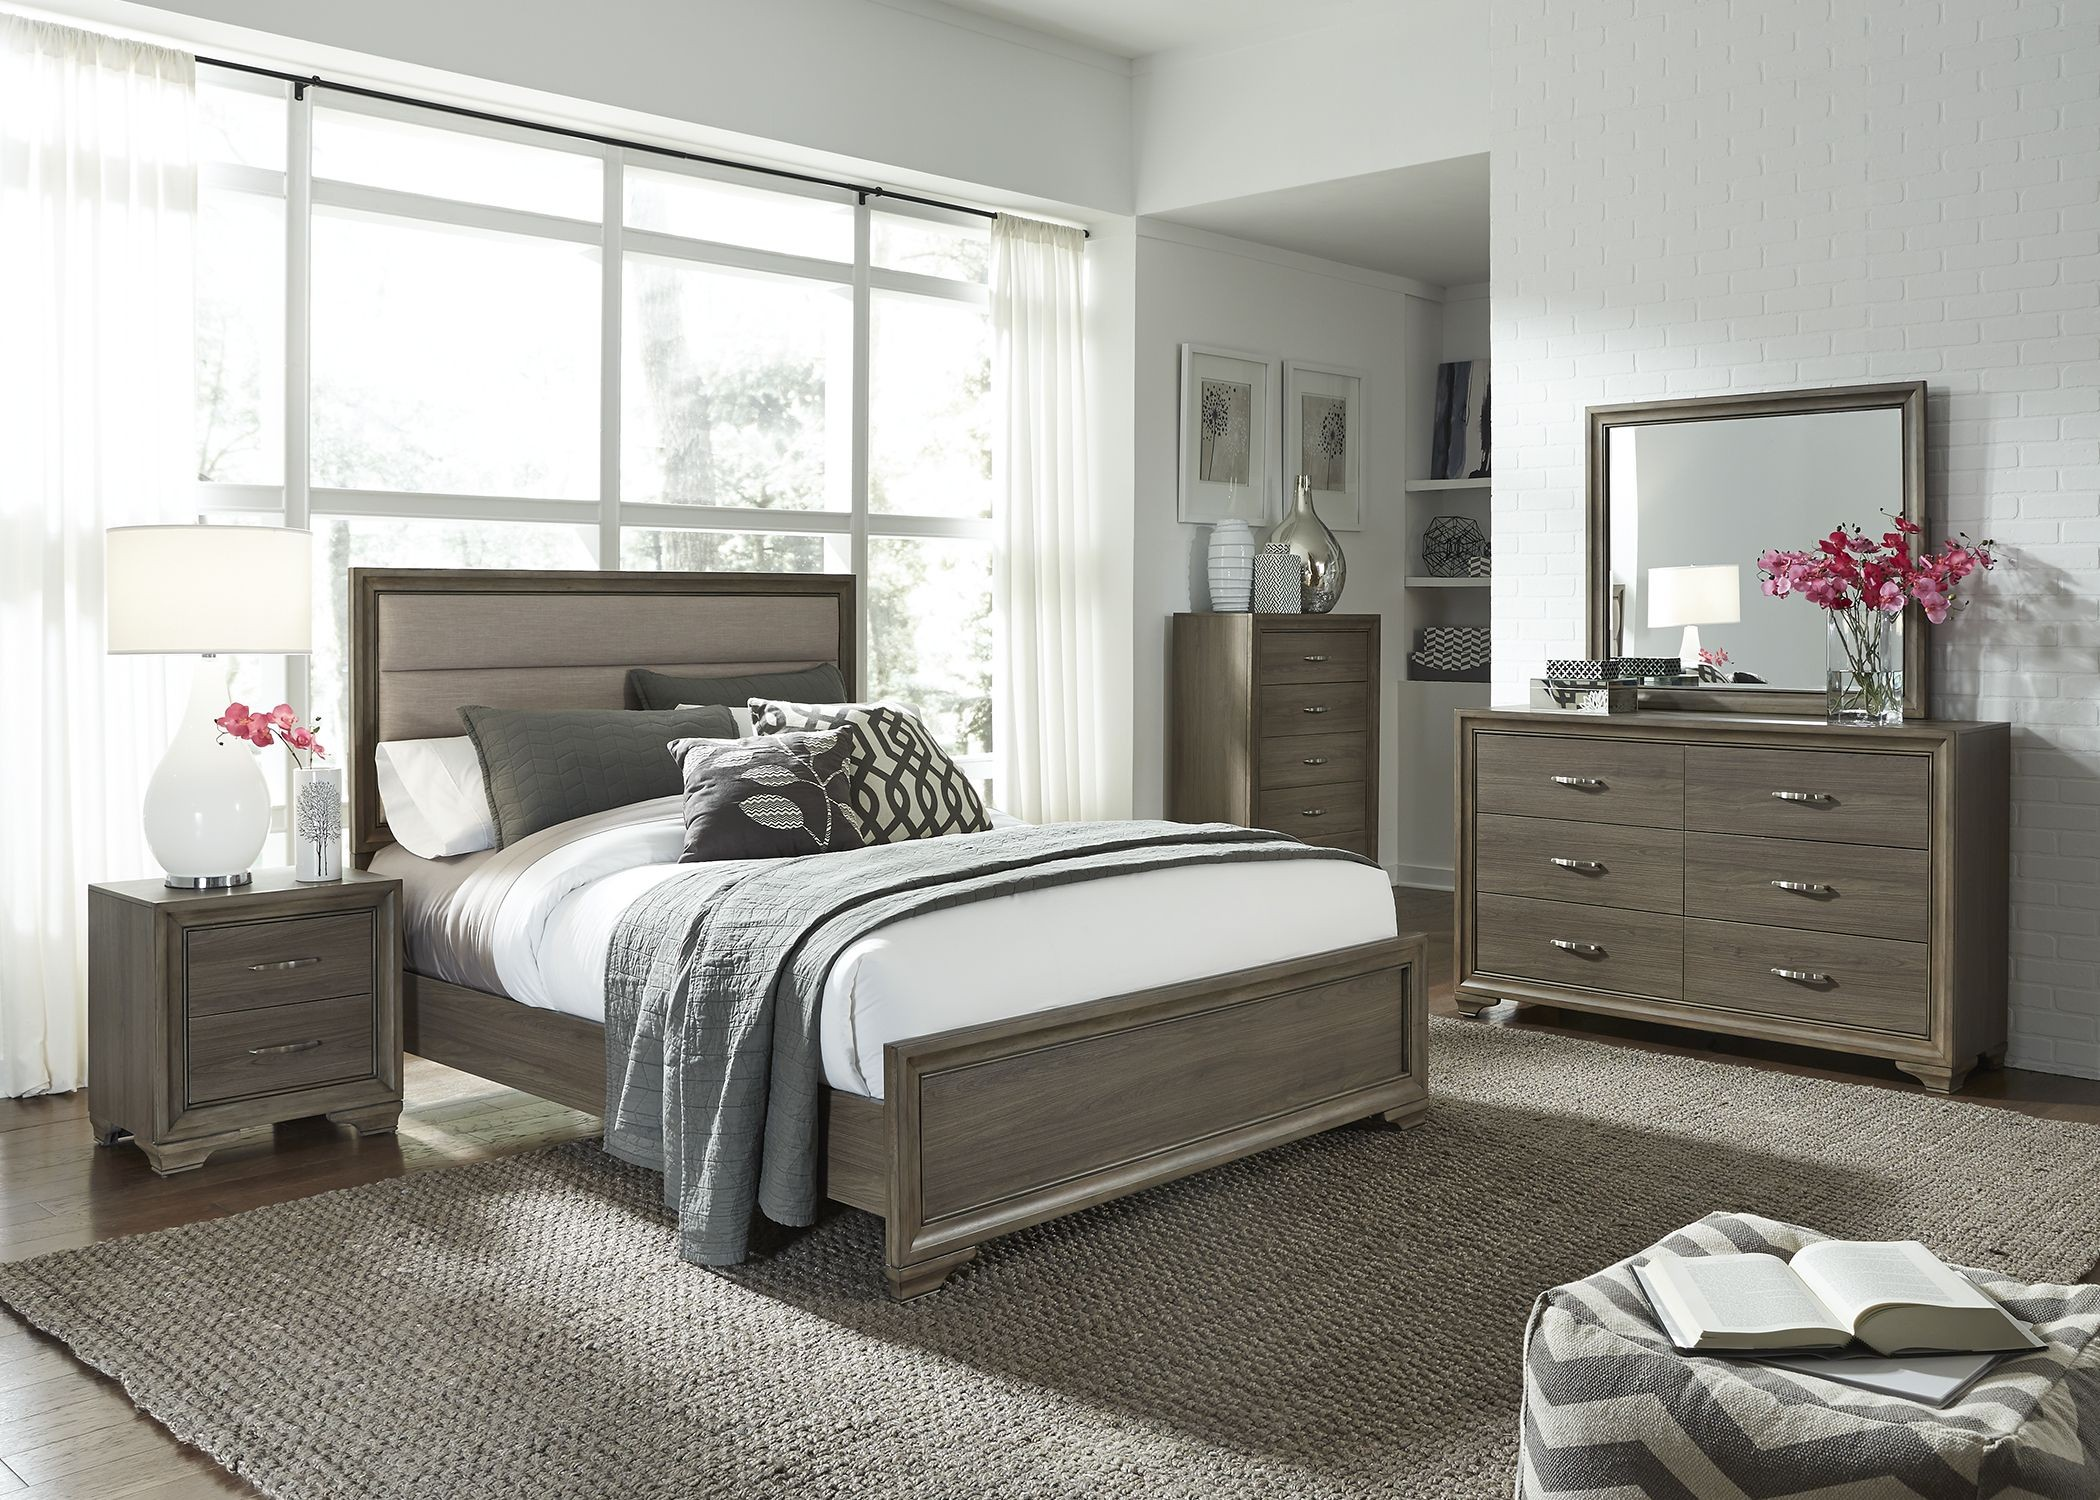 Hartly gray wash youth upholstered panel bedroom set from Gray bedroom furniture